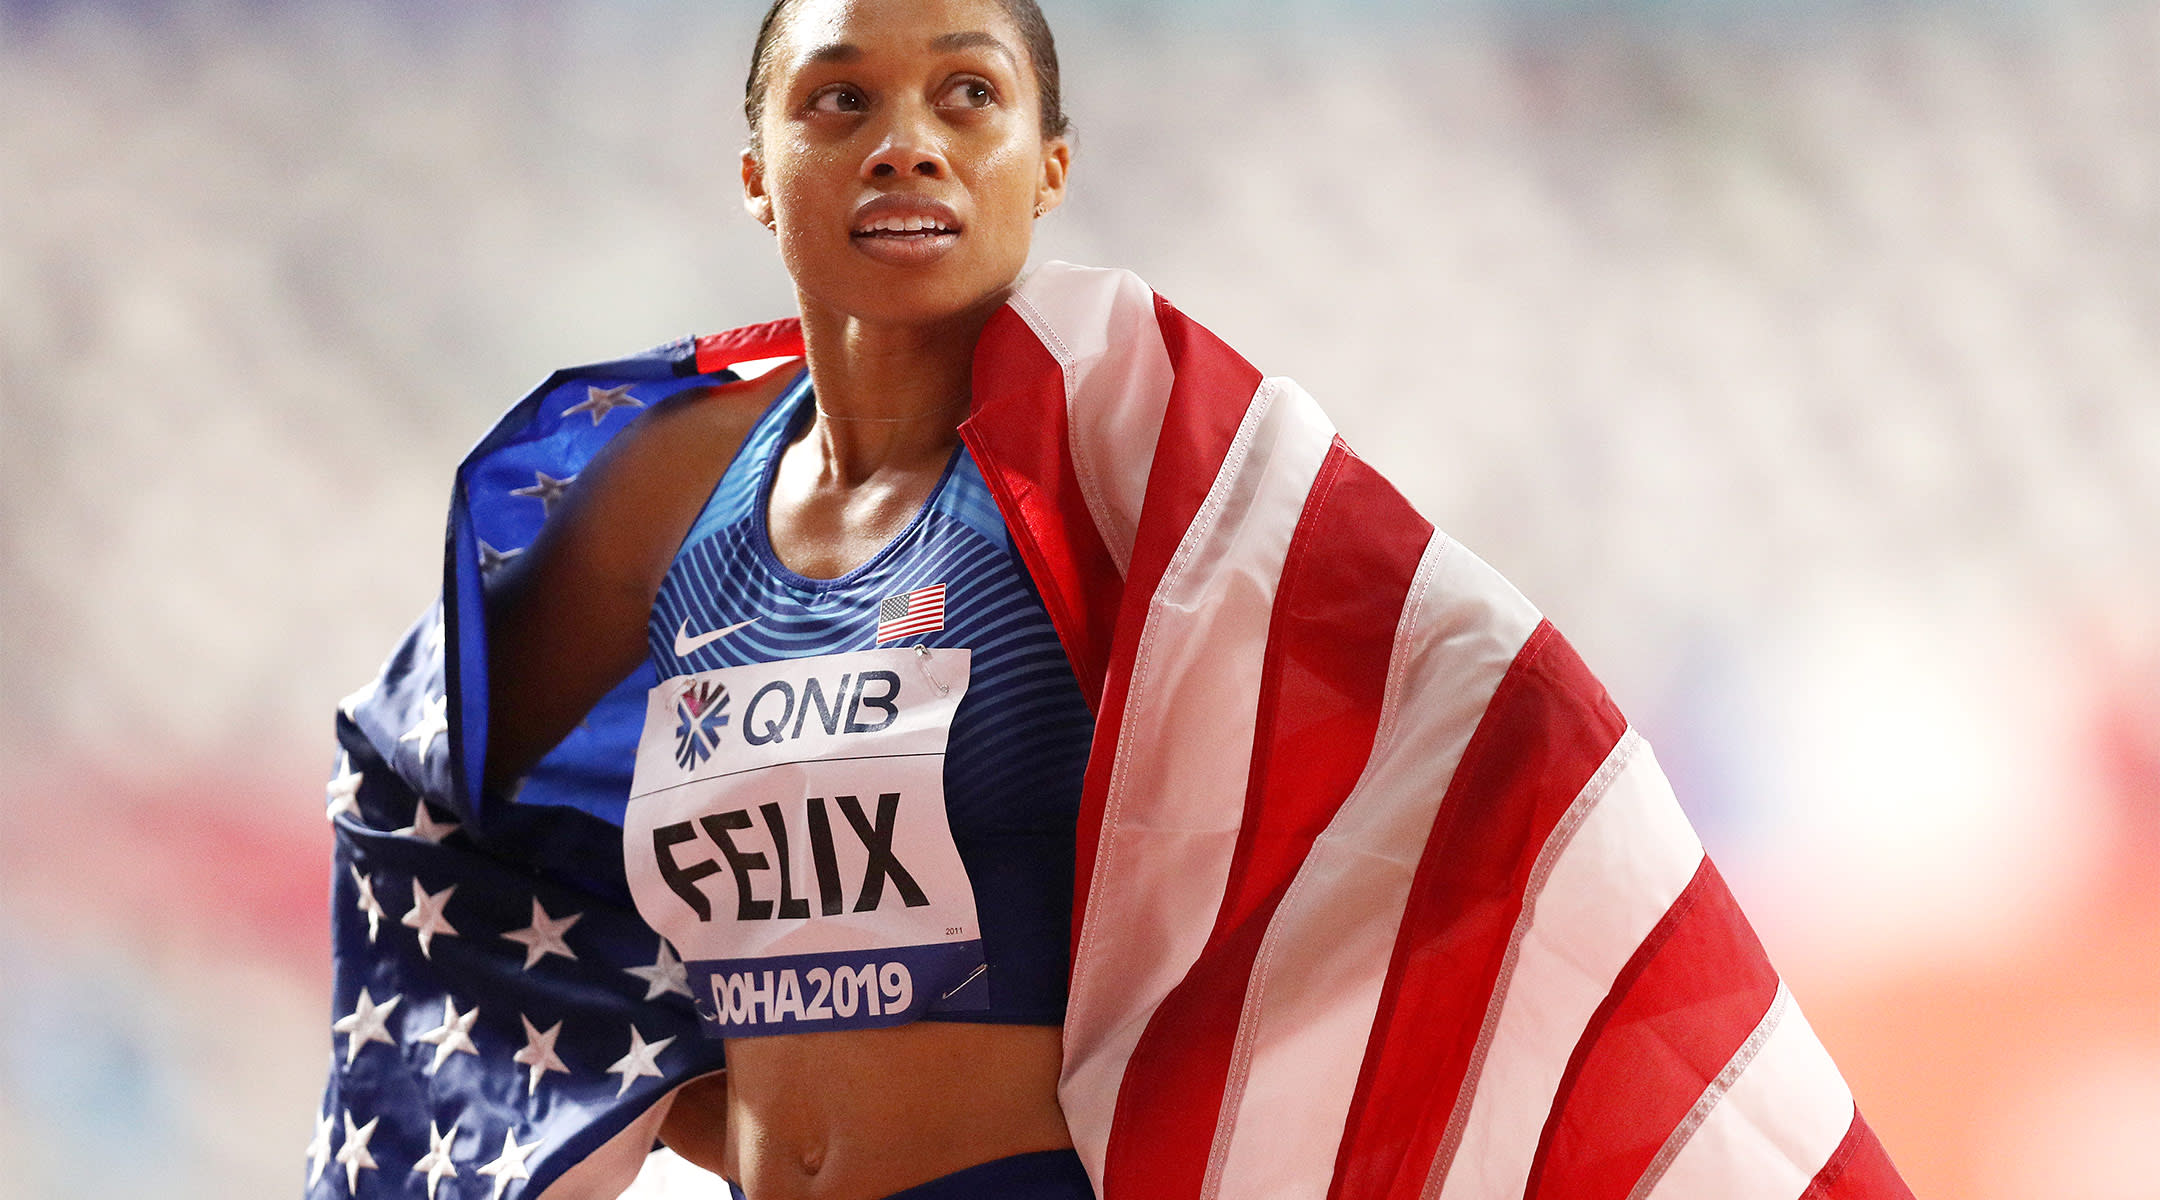 Runner Allyson Felix Sets New Medal Record 10 Months After C-Section